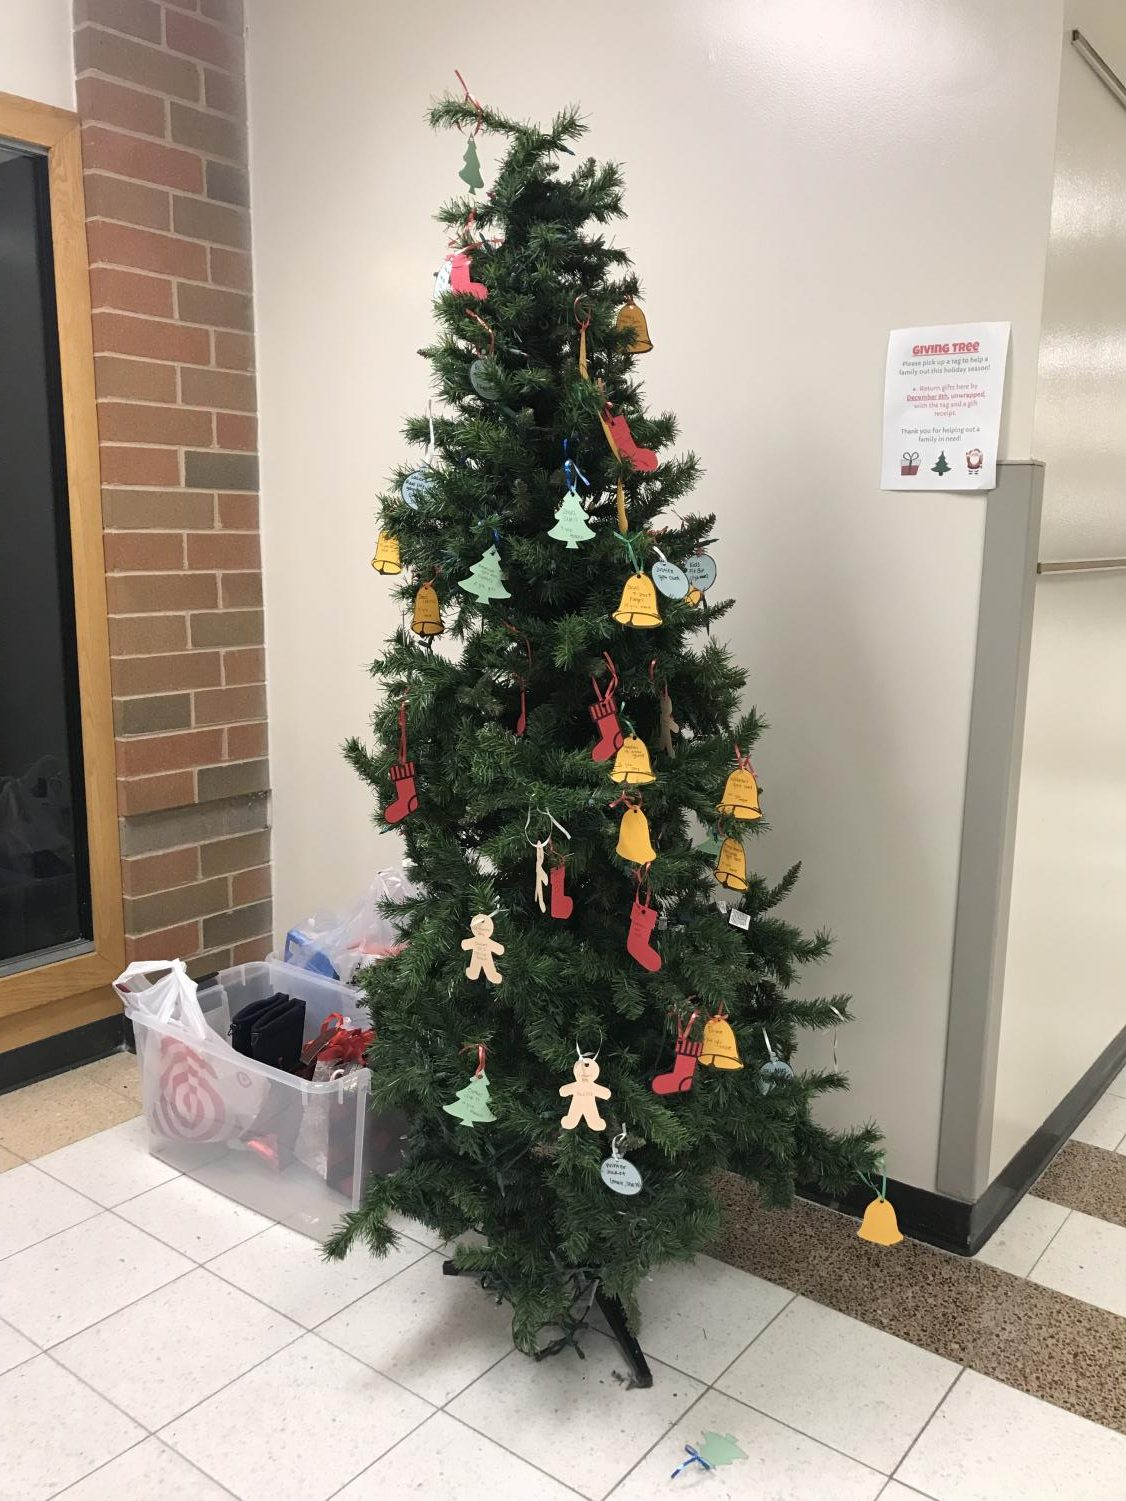 The trees can be found at South campus in the library and at North campus in the front foyer.